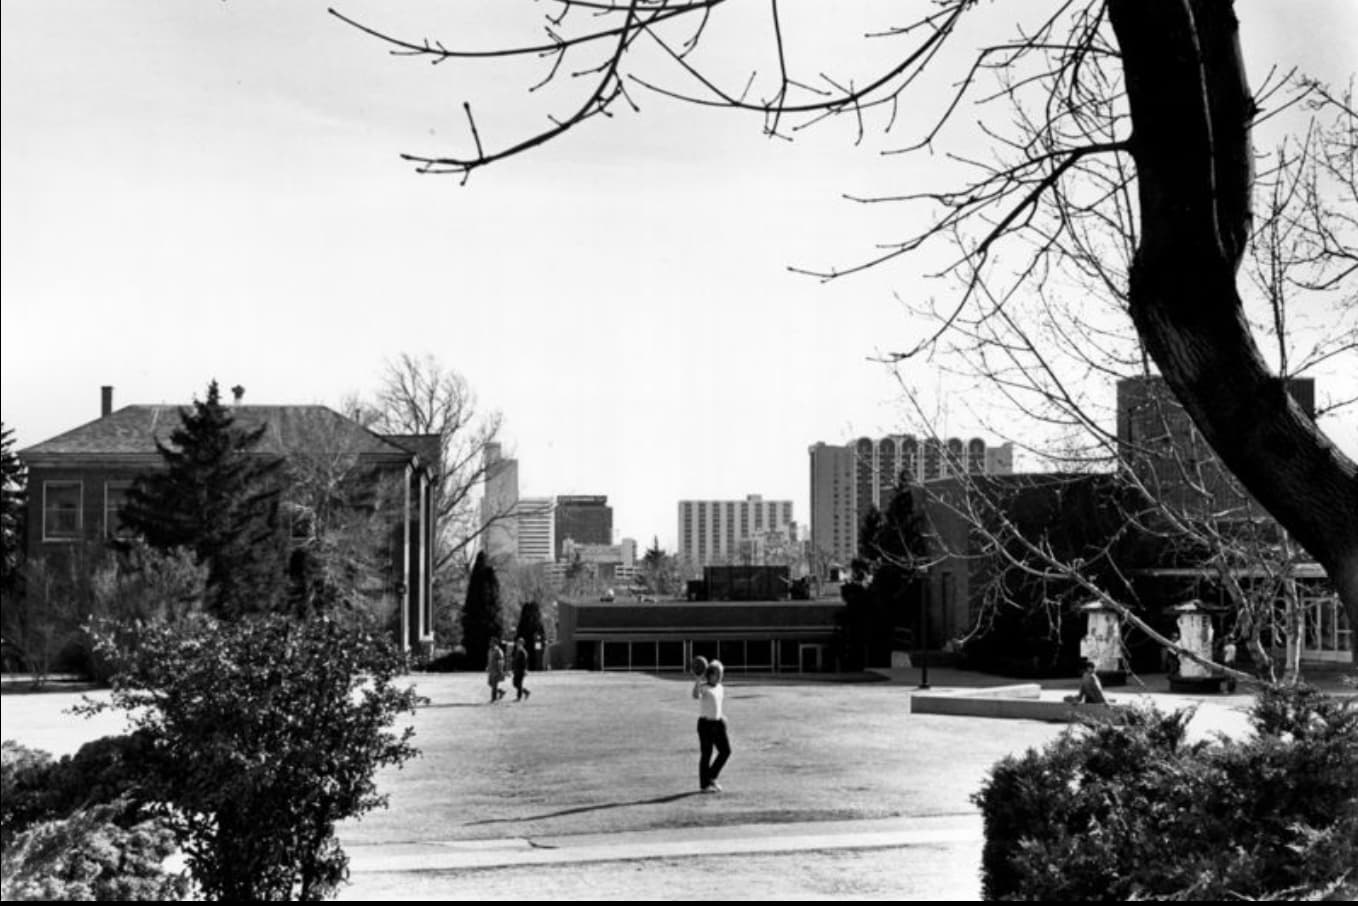 A student stands on the lawn in front of the Jot Travis while throwing a ball in 1985.